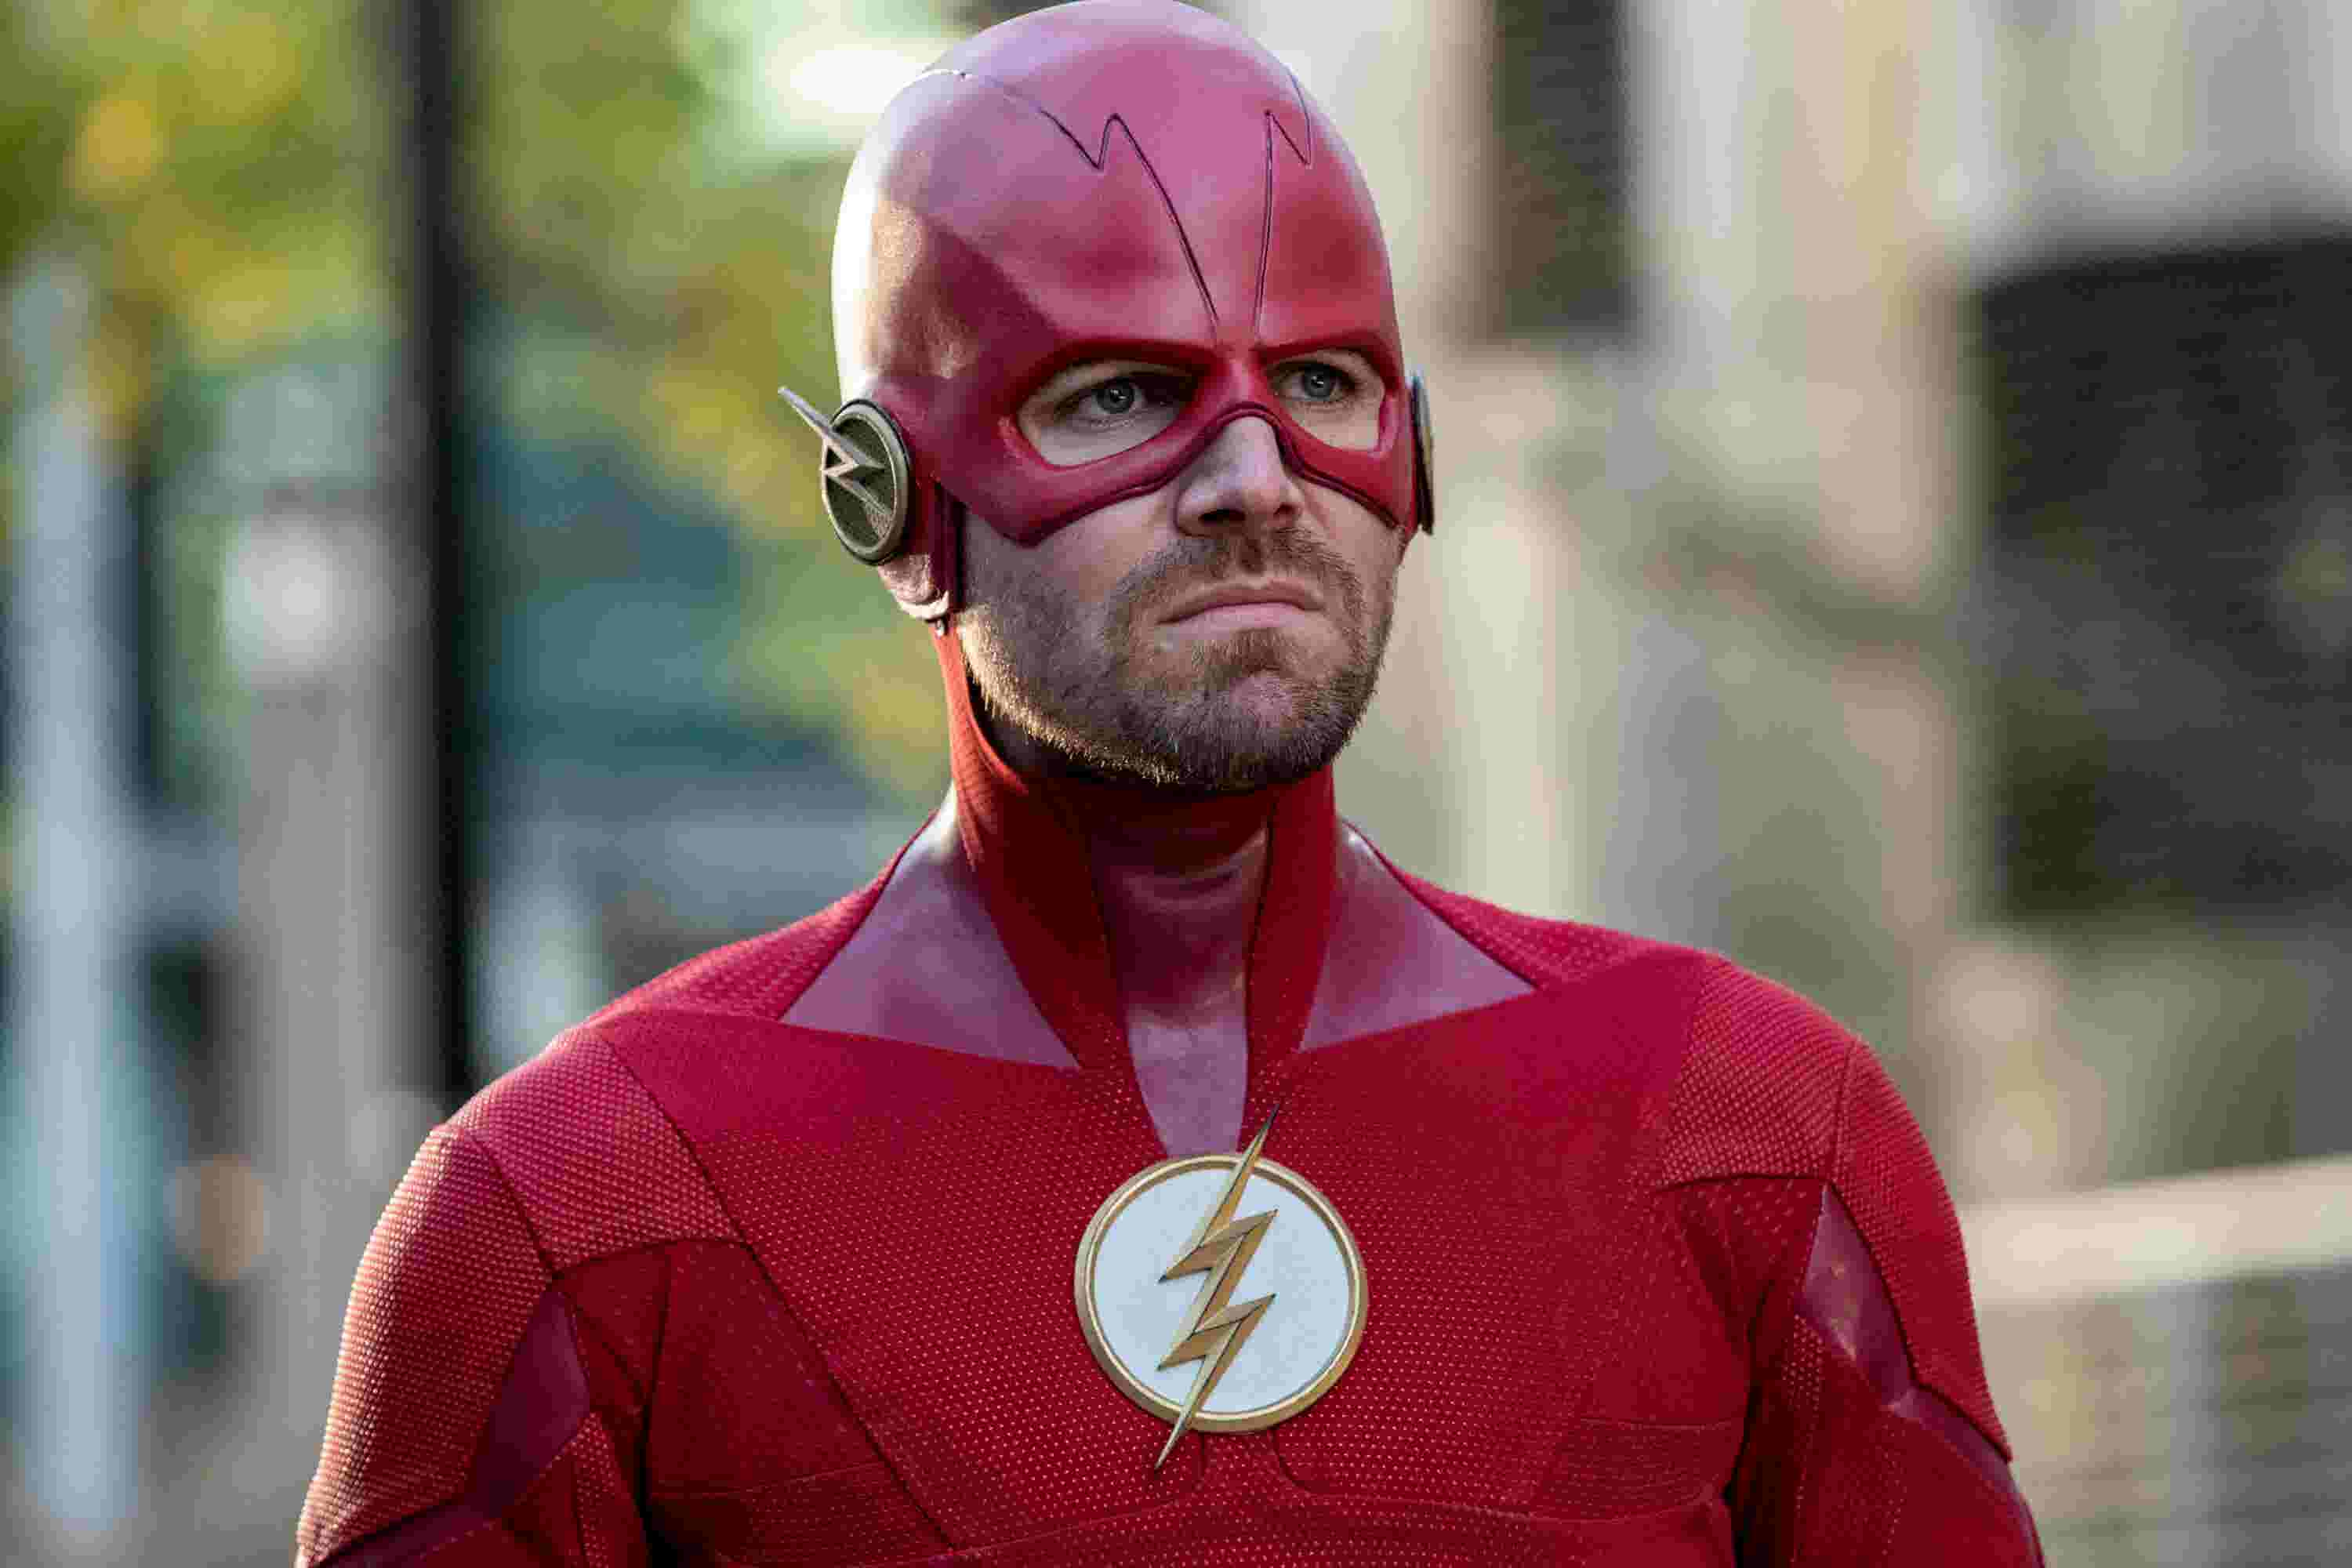 Flash and Green Arrow switch bodies in CW's 'Elseworlds' crossover